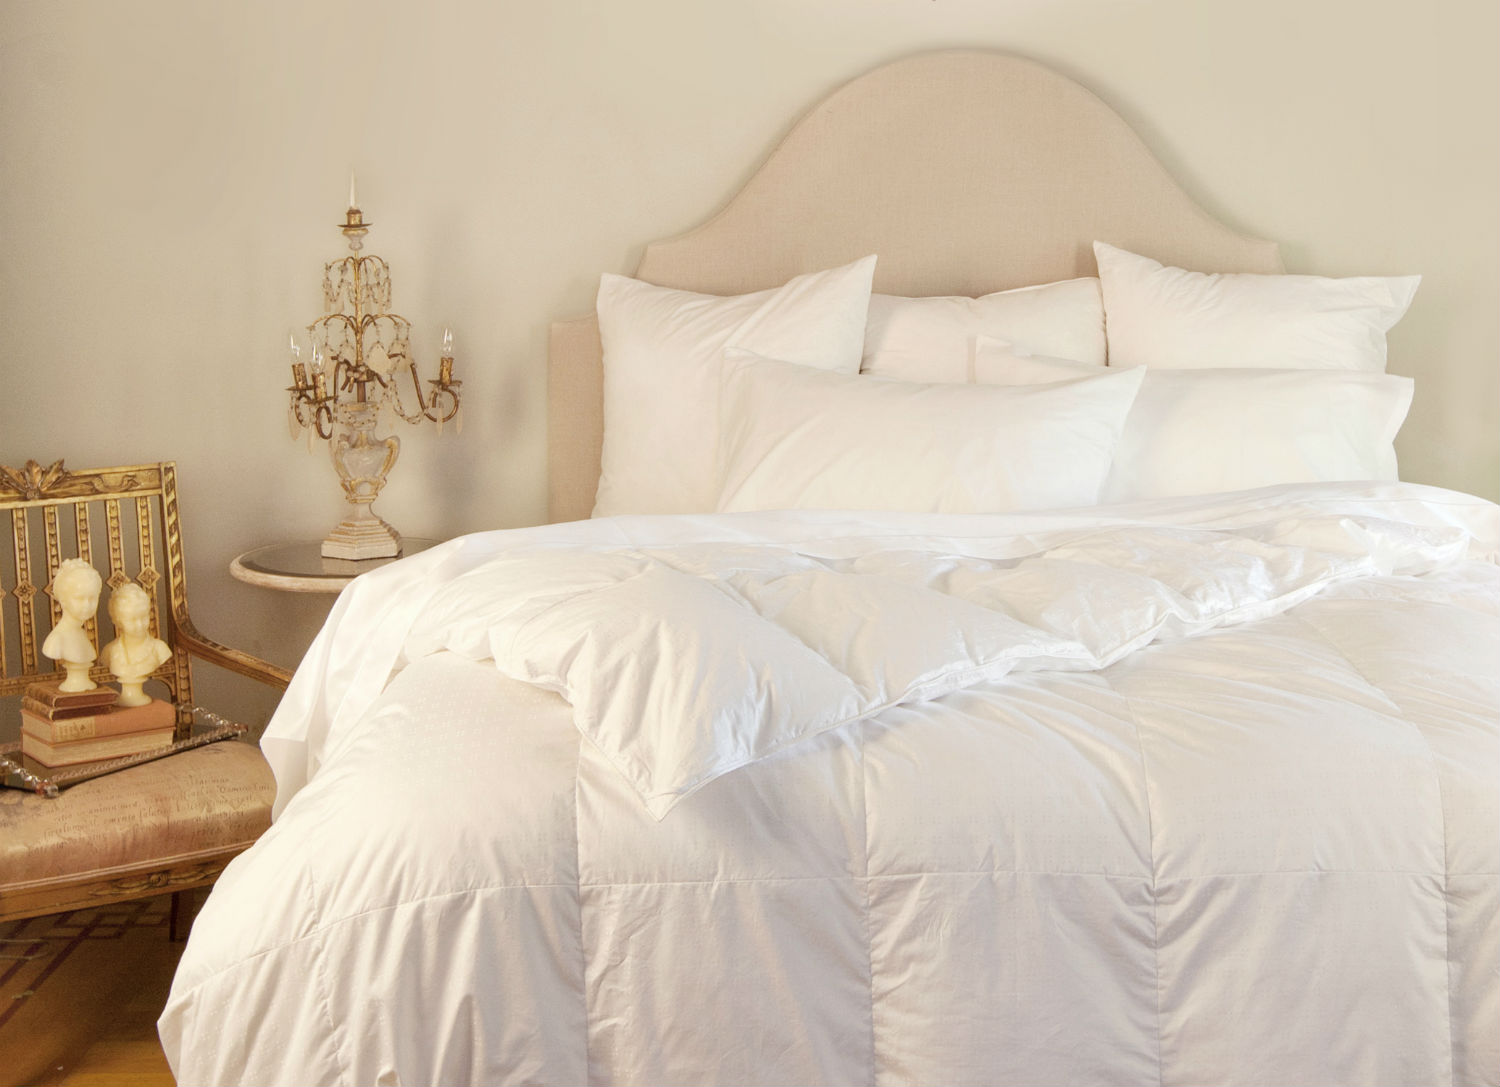 Salzburg Duvet/Down Comforter & Pillows by St. Geneve Luxury Bedding